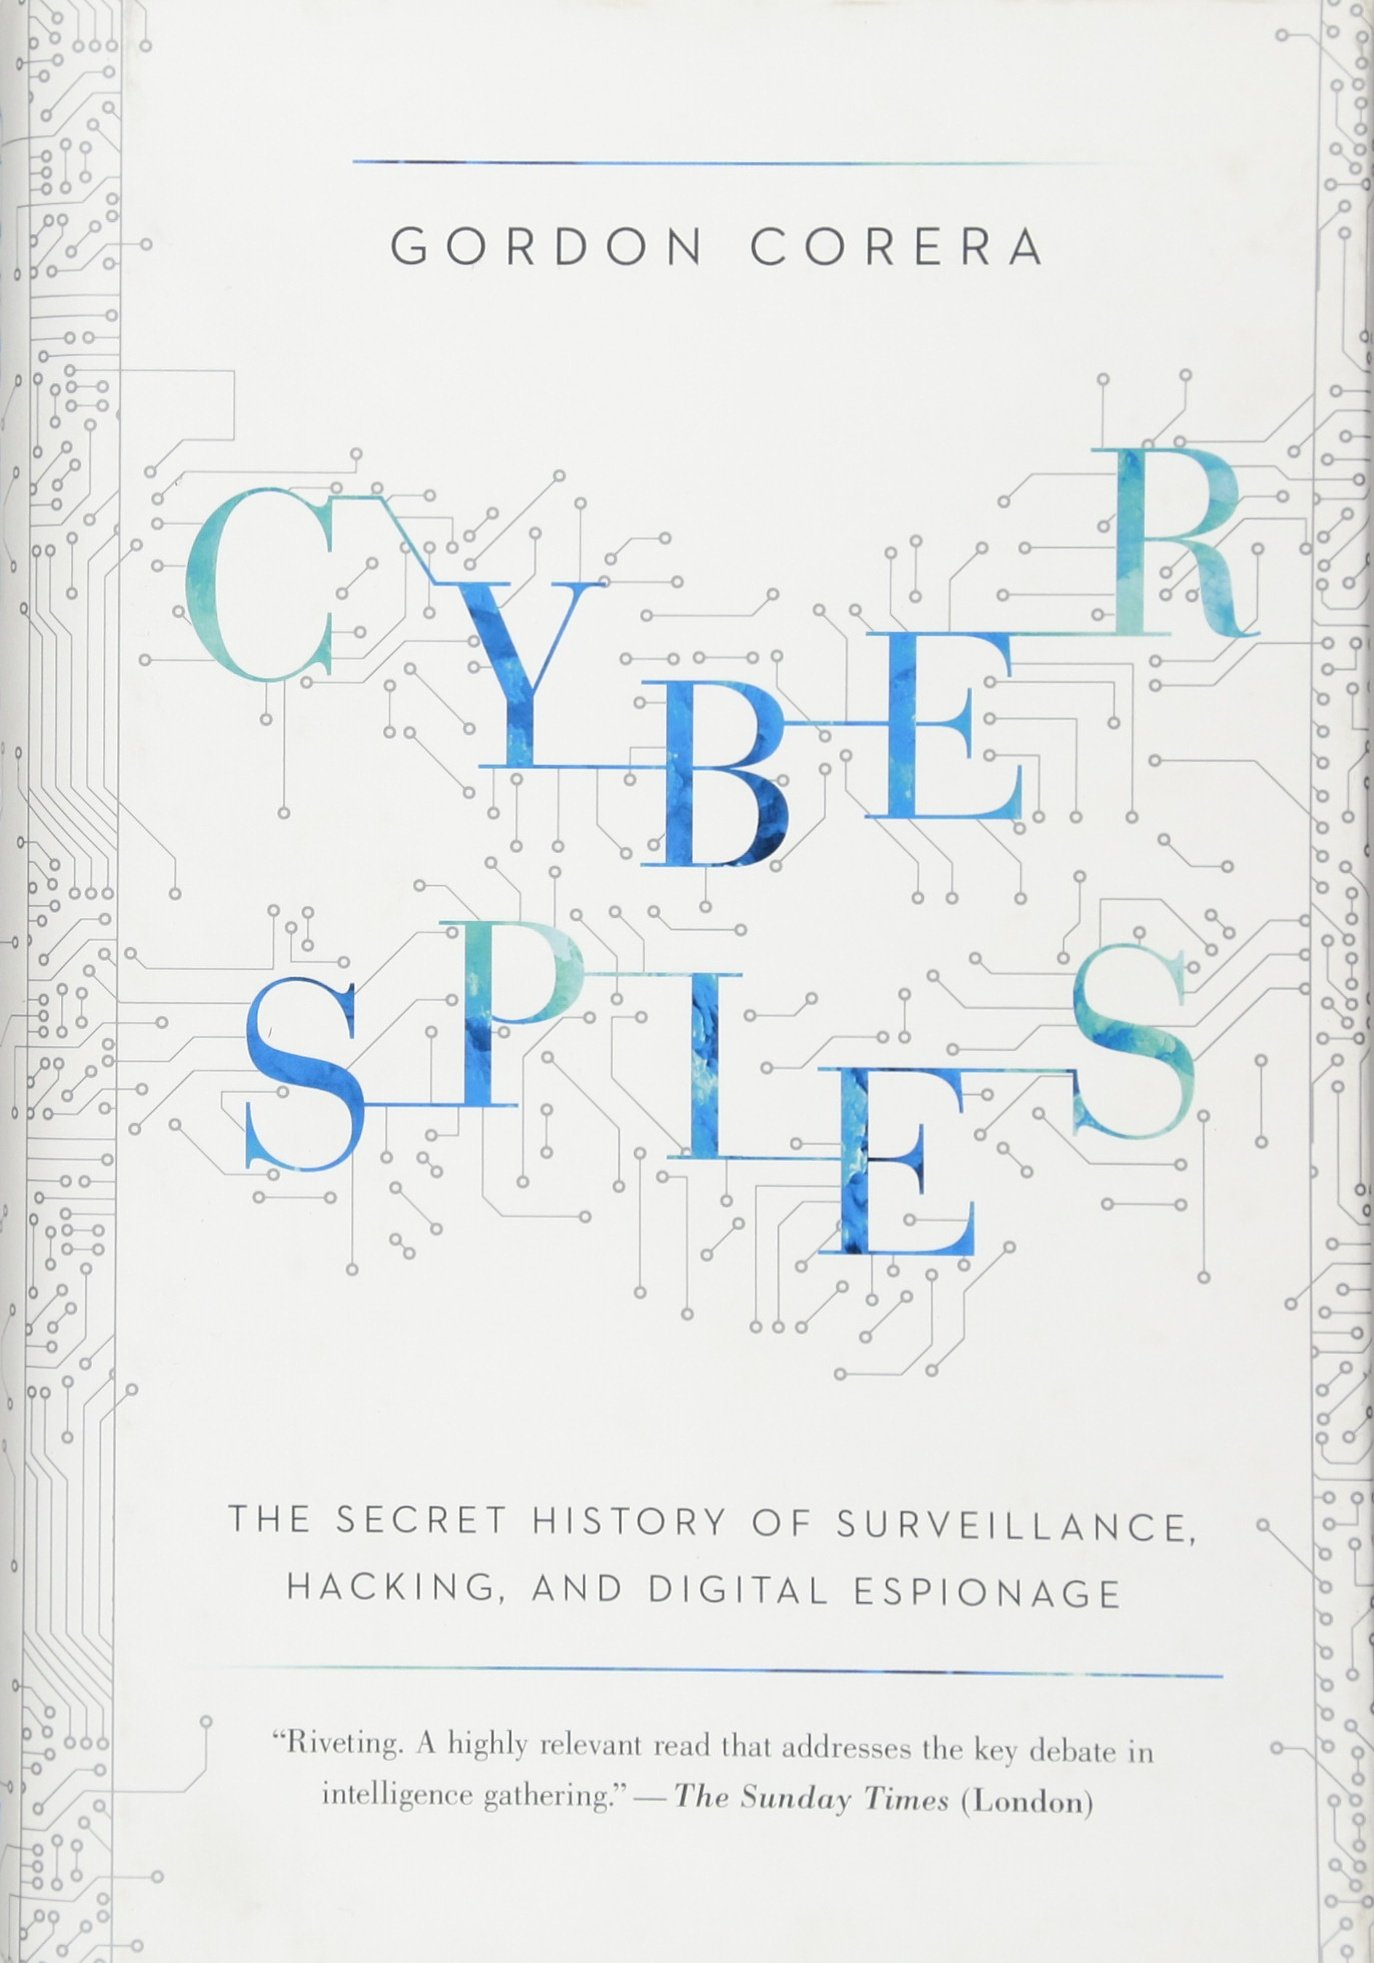 Cyberspies: The Secret History of Surveillance, Hacking, and Digital Espionage PDF